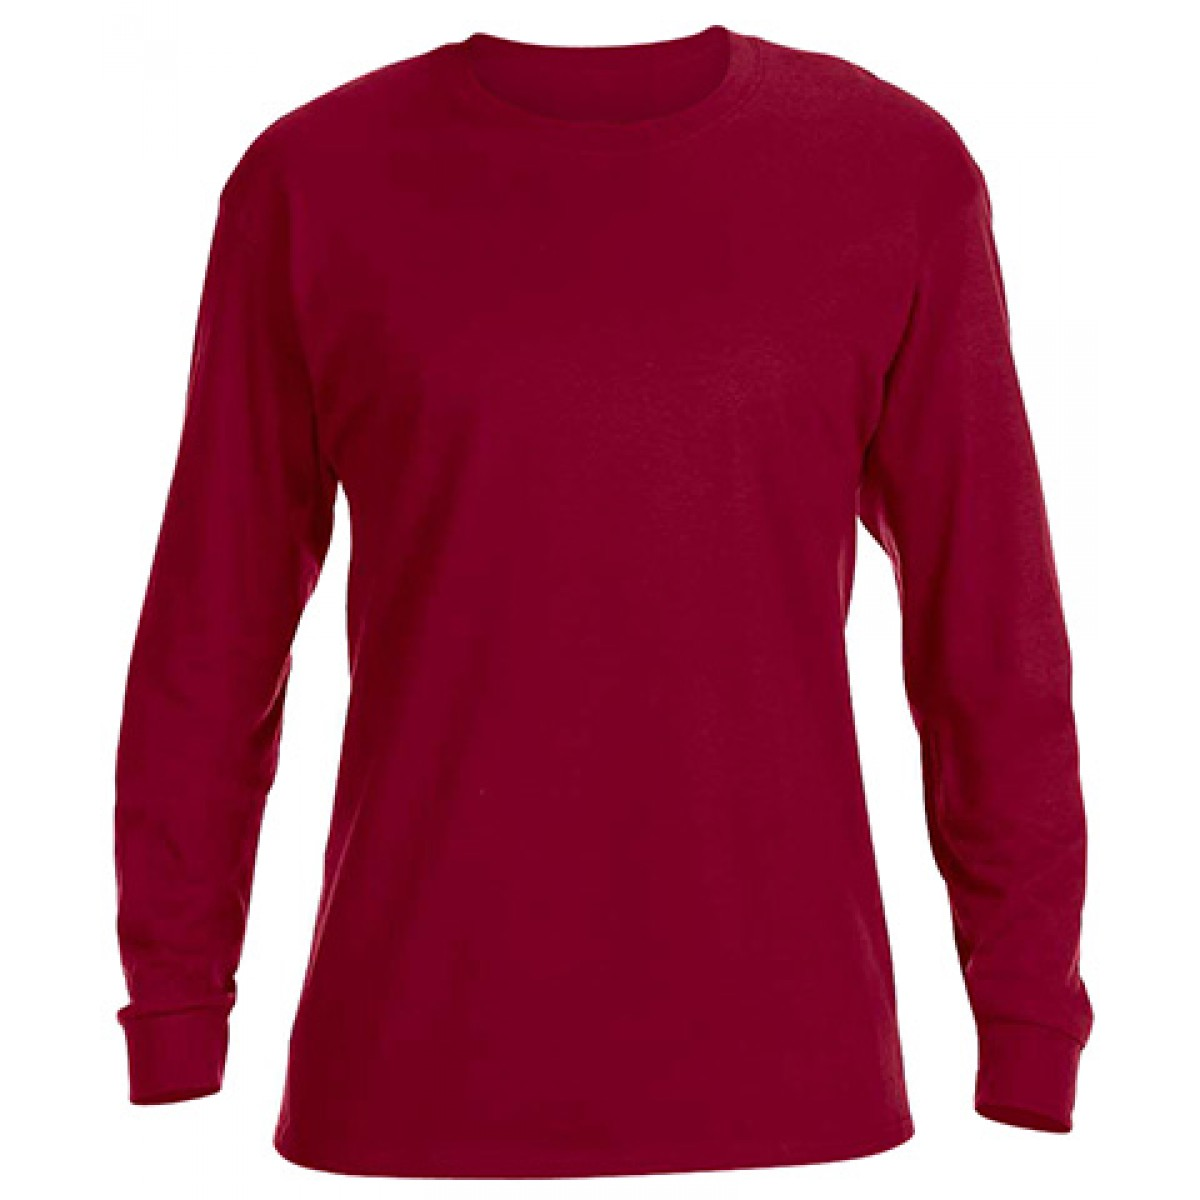 Basic Long Sleeve Crew Neck -Cardinal Red-L